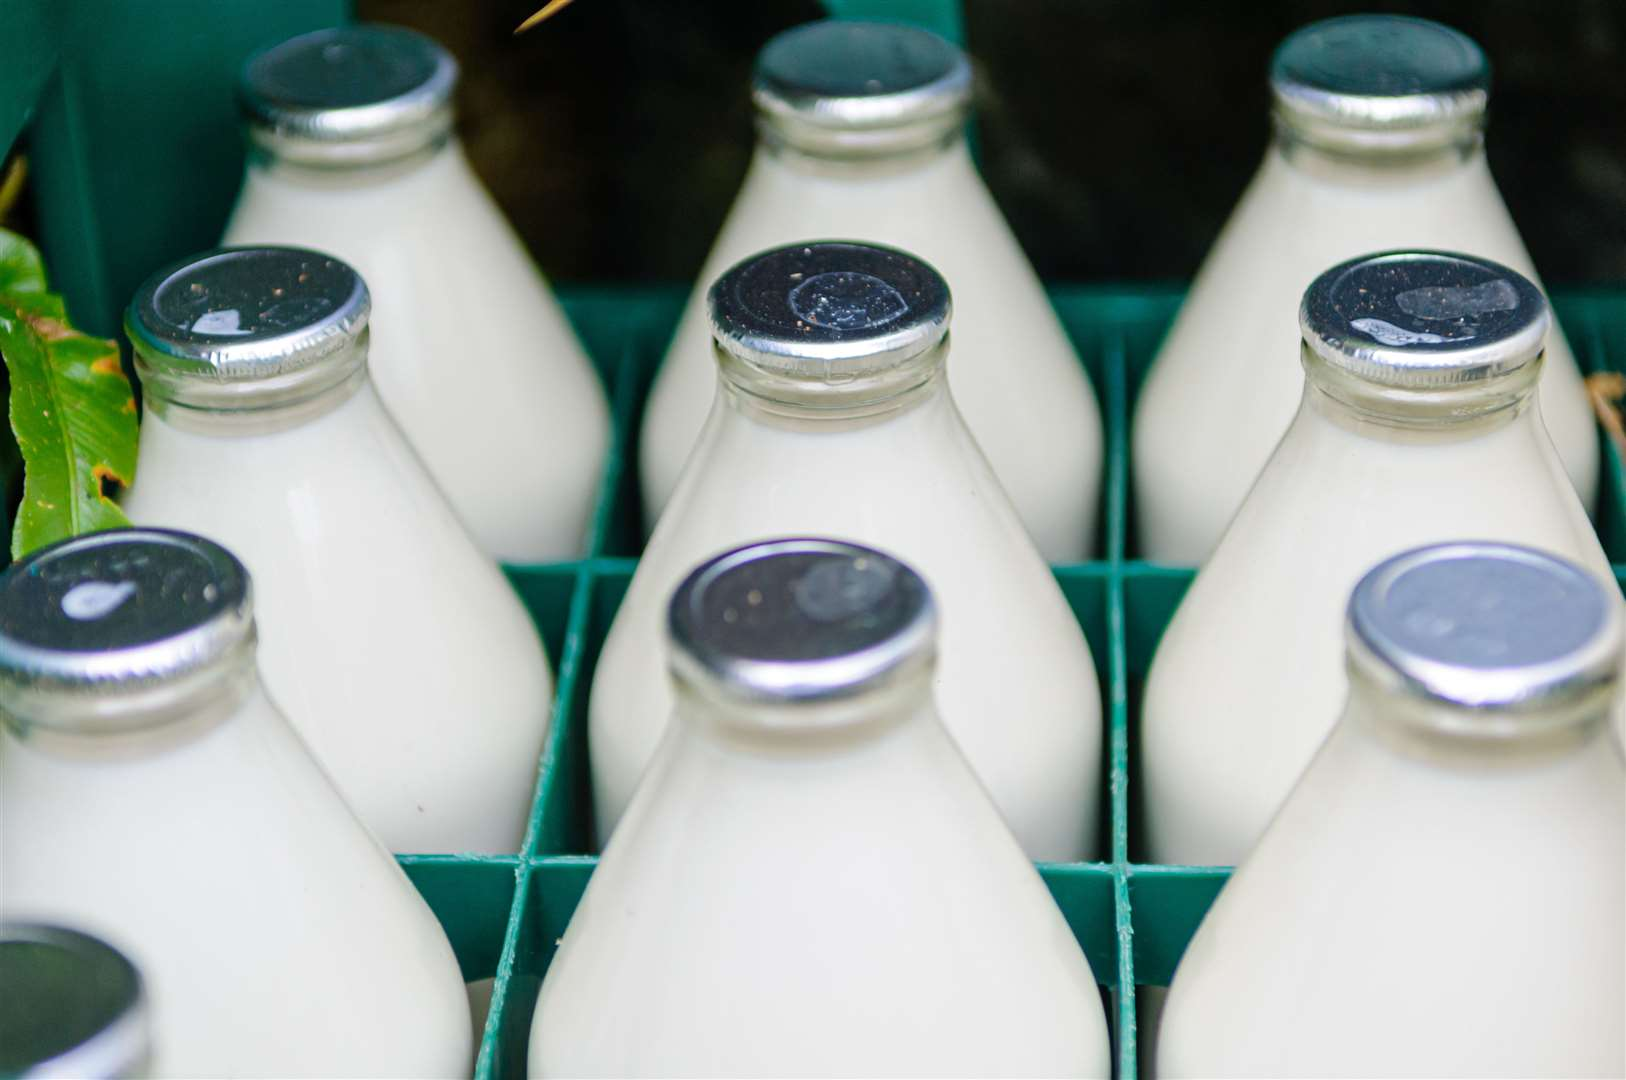 Residents have been voicing their concerns after a milk delivery company announced it was switching to online ordering